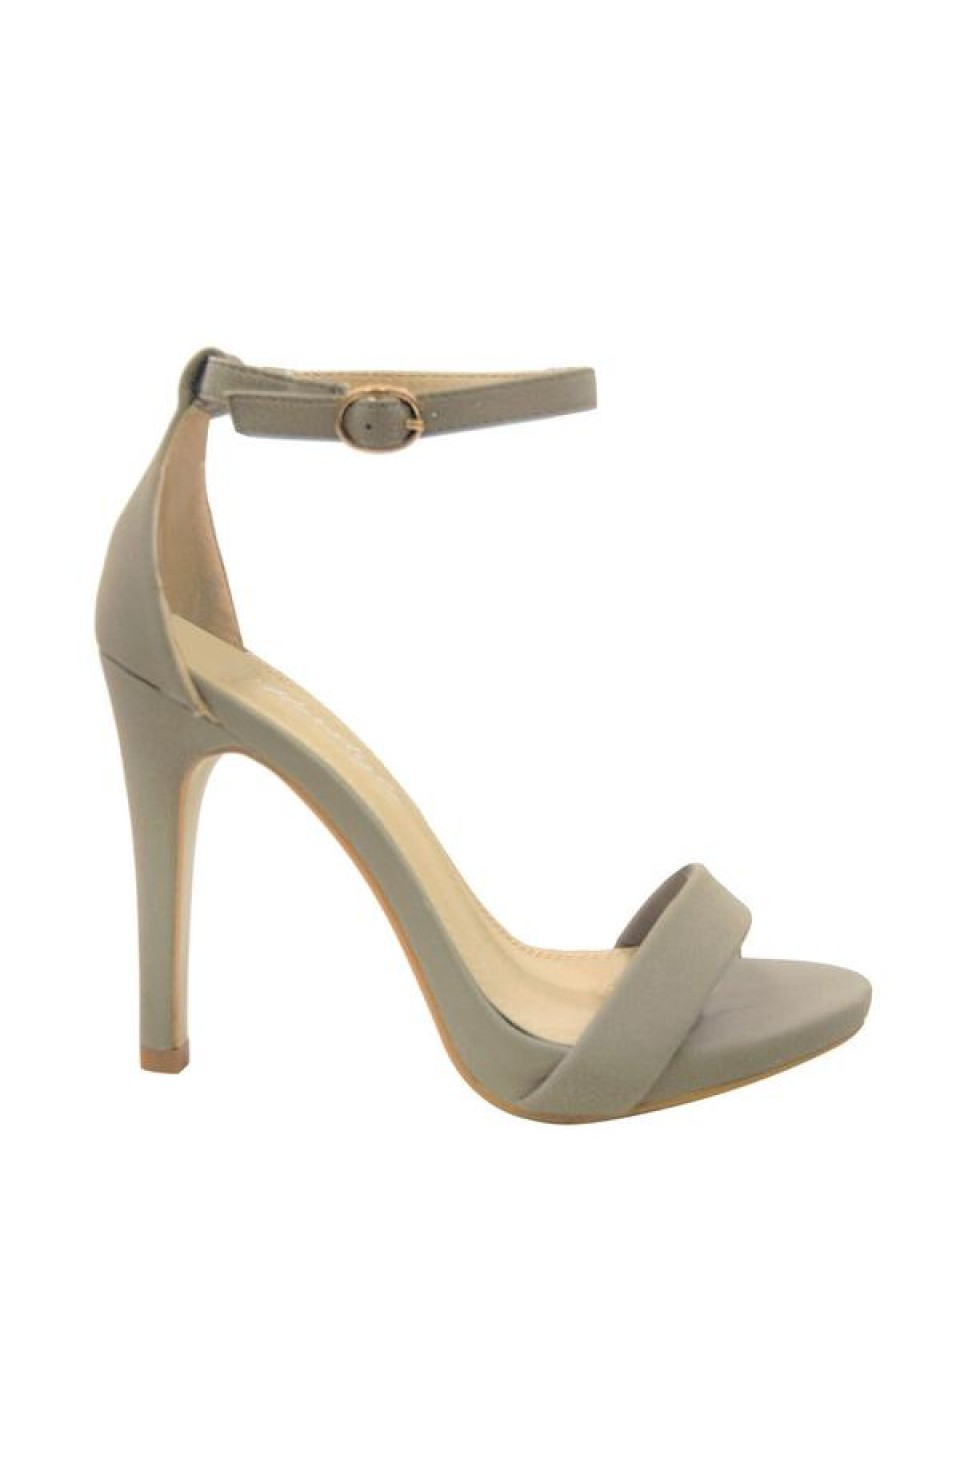 Women's Grey Manmade Livveey 4-inch Heeled Sandal with Glowing Ankle Buckle